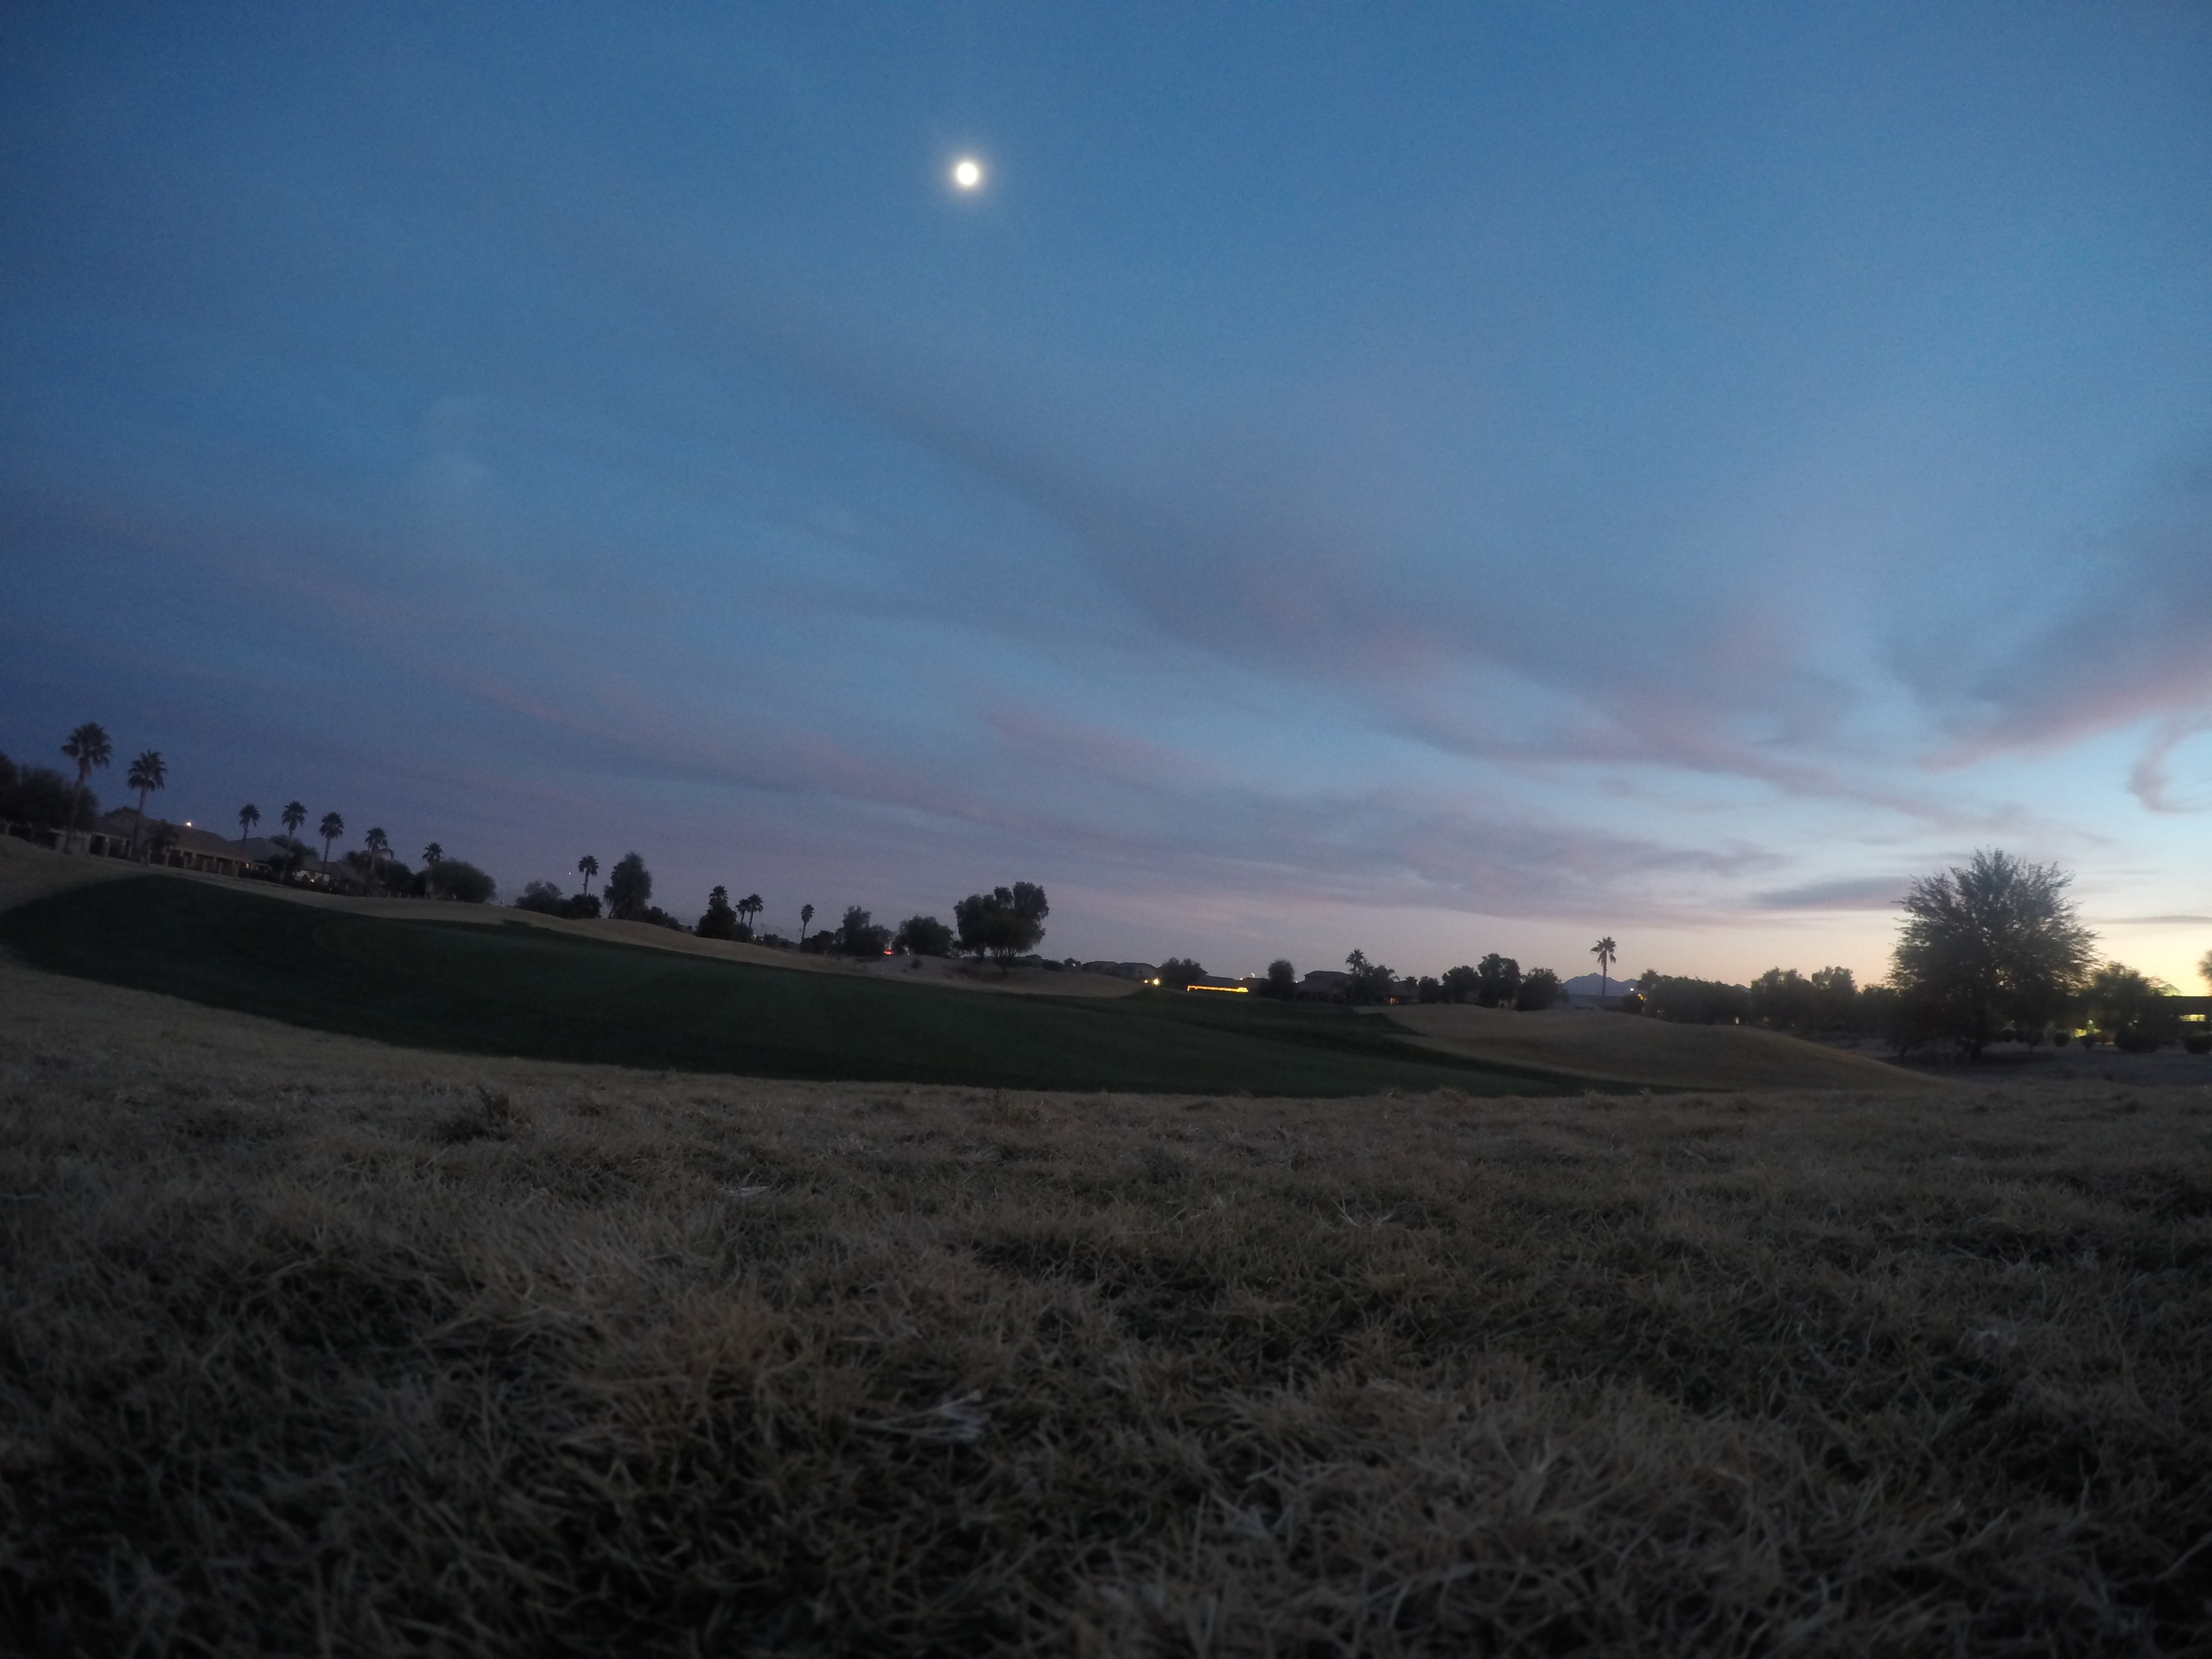 We recently added a GoPro to our equipment stash and it has been fun testing it out on the golf course across the street.